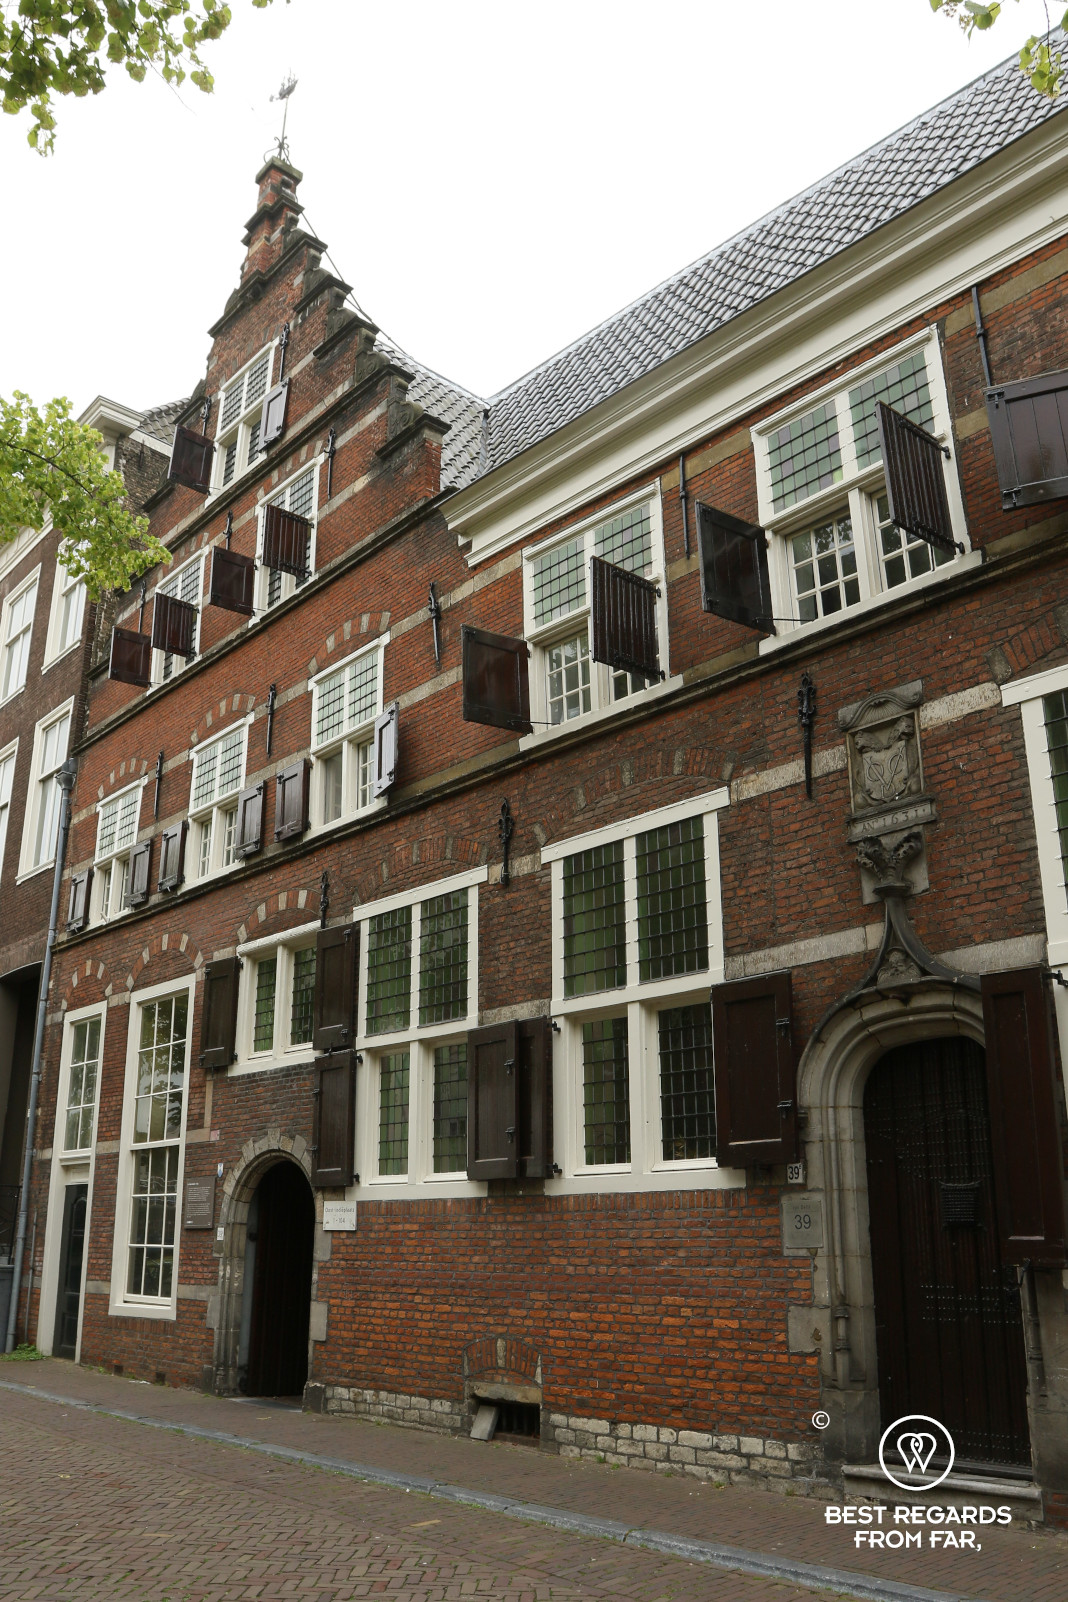 The Dutch East India Company house in Delft